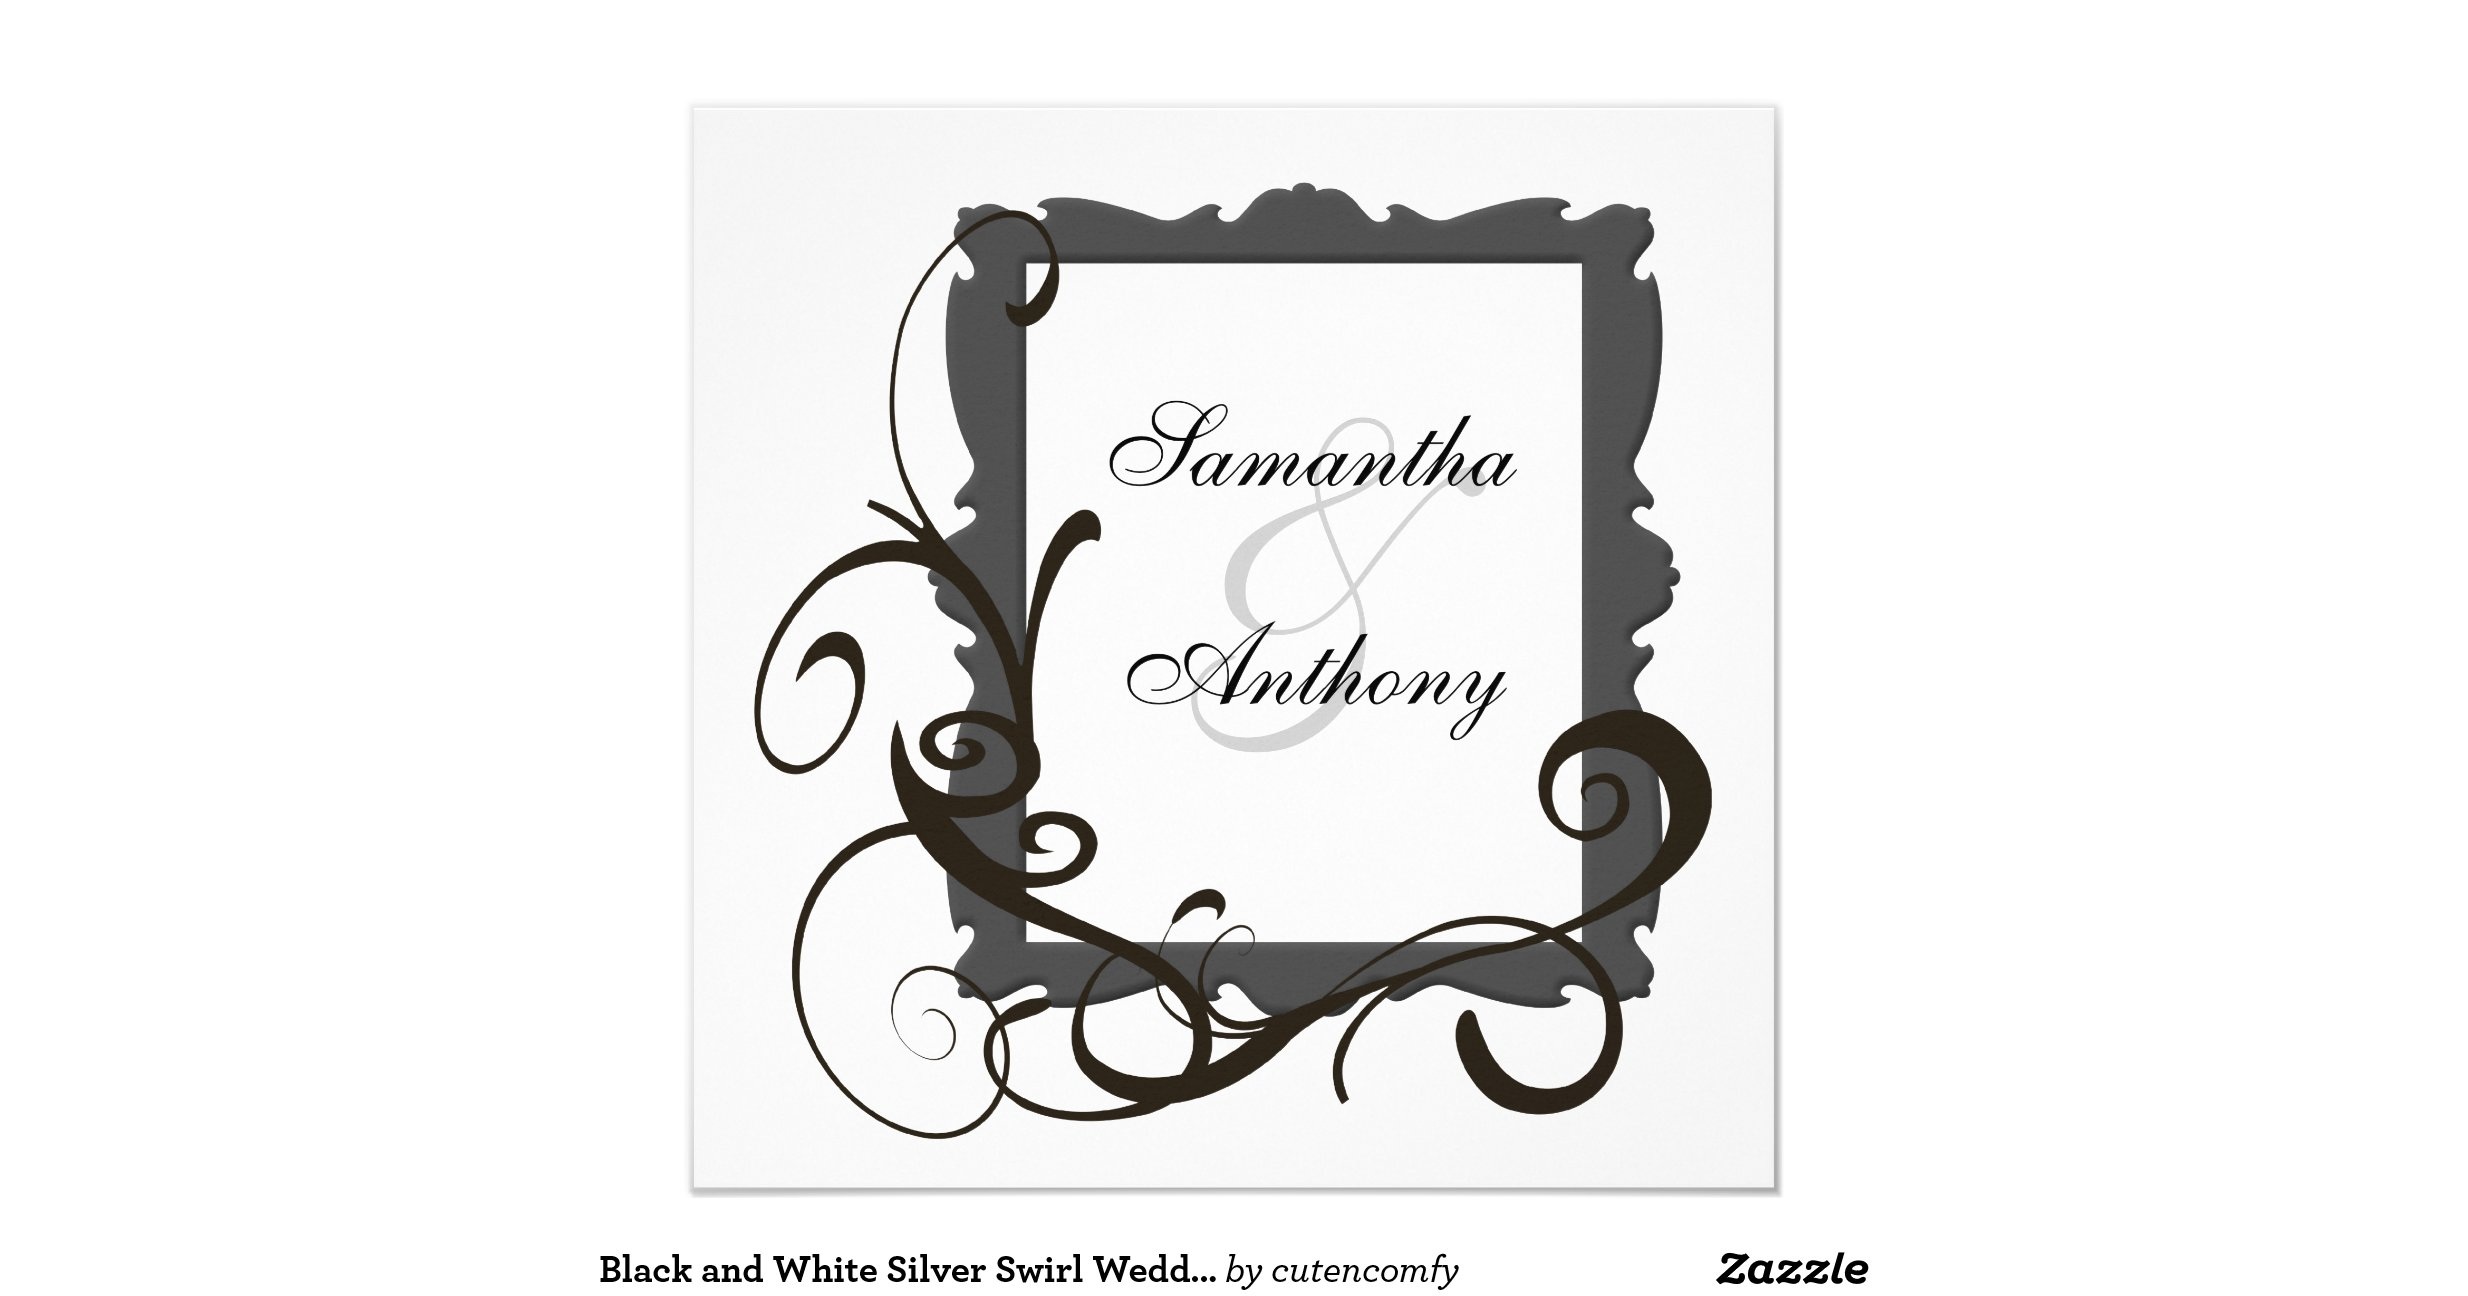 Black And Silver Wedding Invitations: Black_and_white_silver_swirl_wedding_invitations